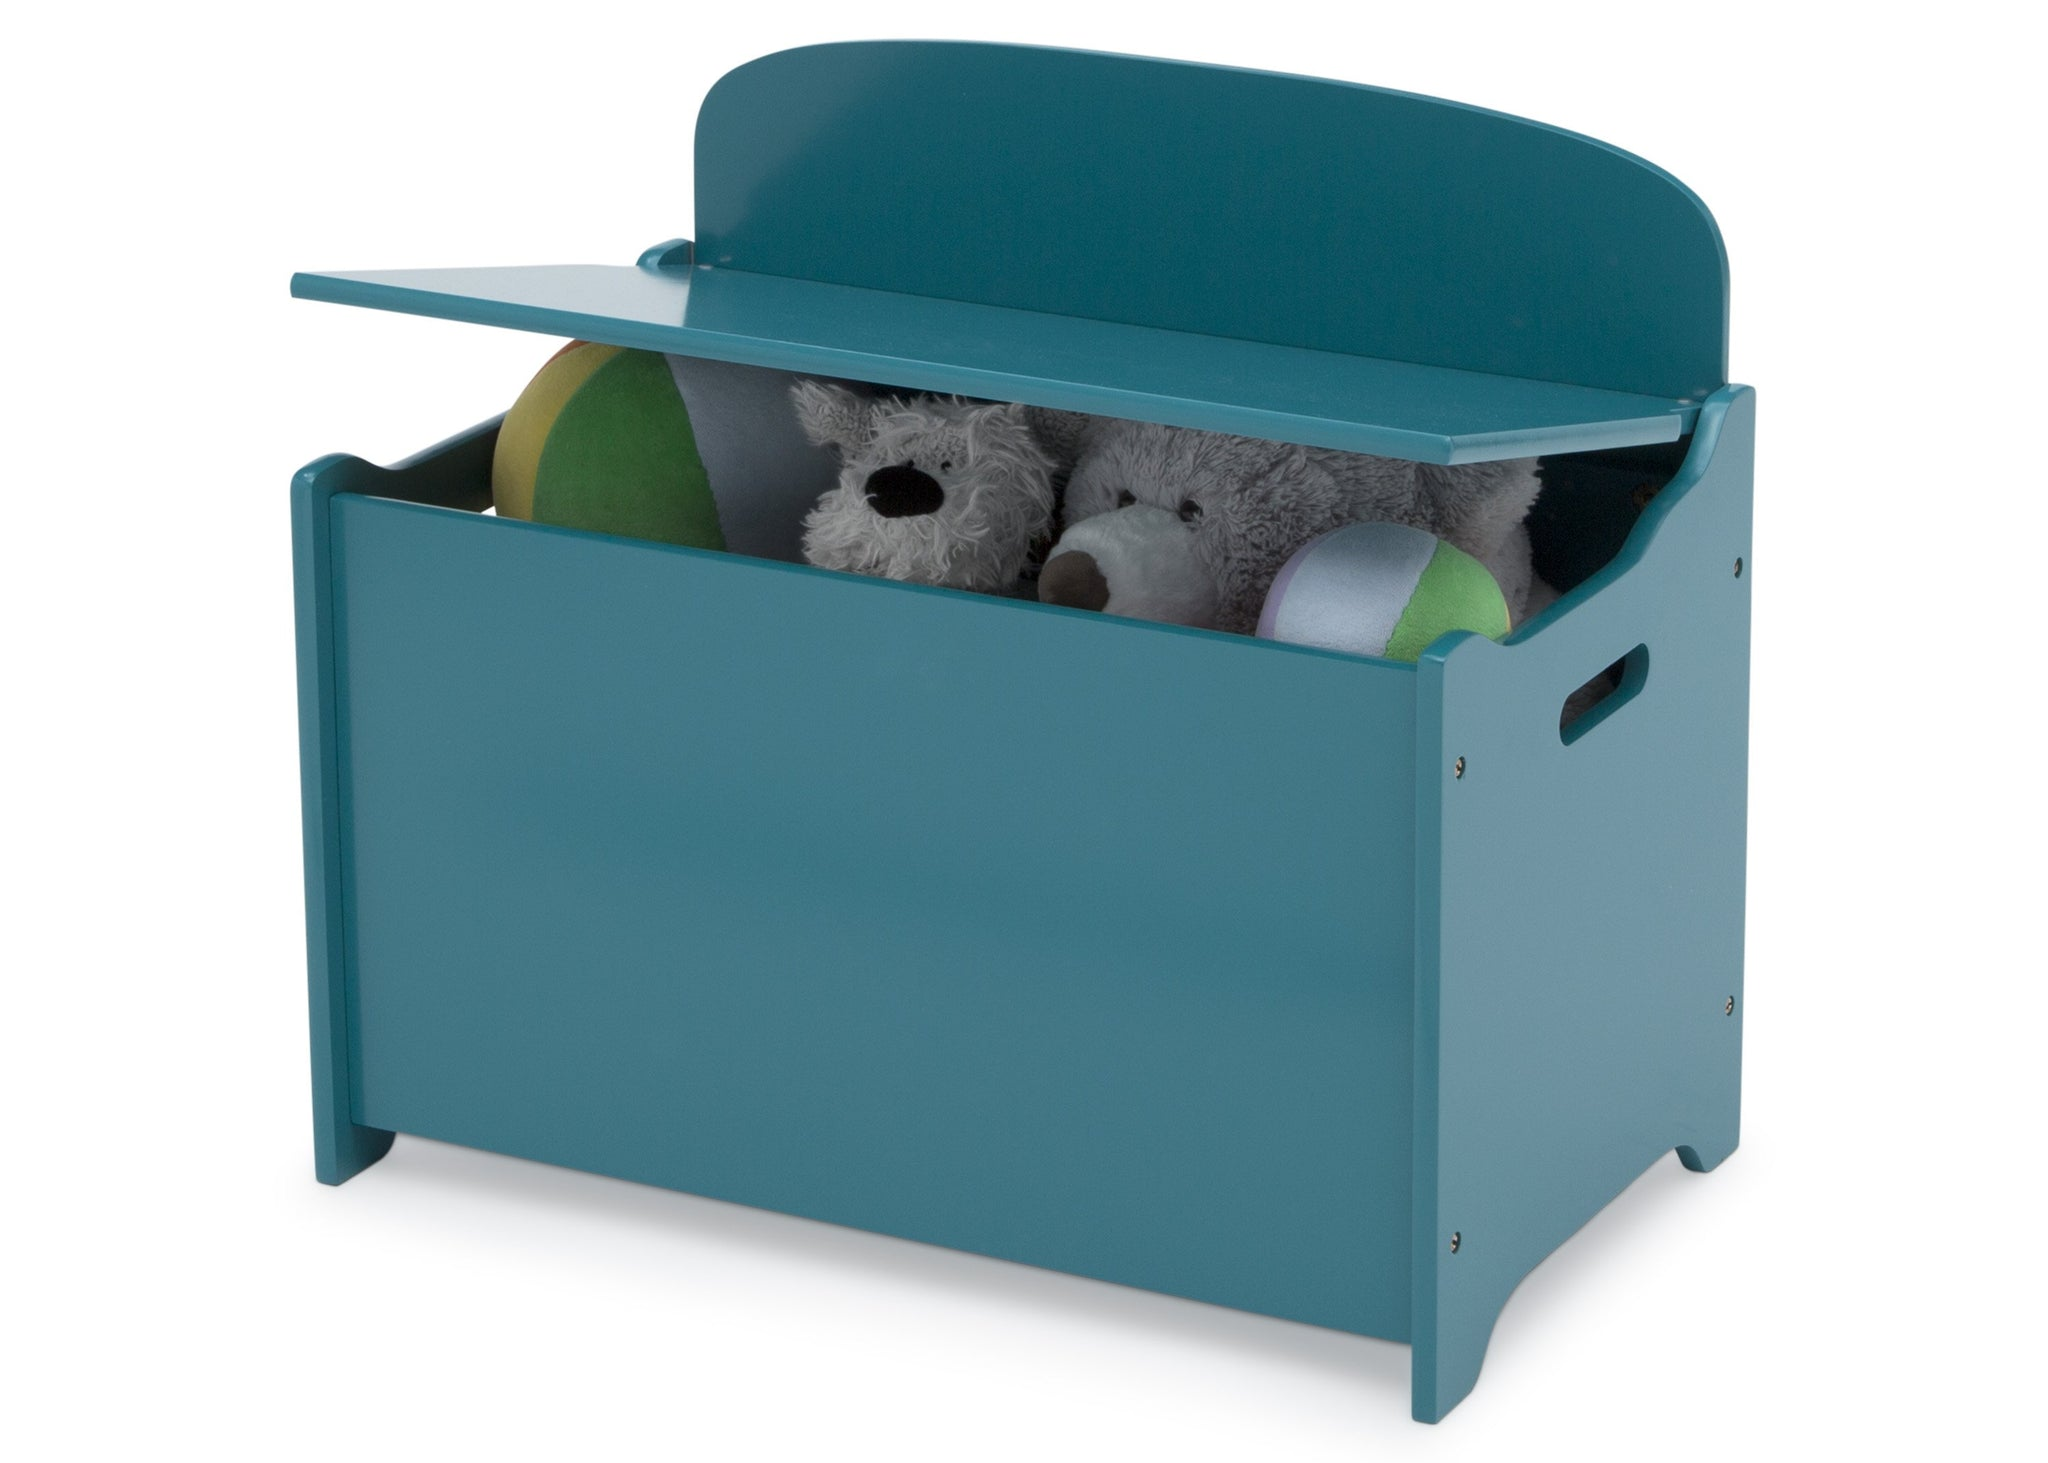 Delta Children Teal (7474C) MySize Deluxe Toy Box, Left Silo View with Lid Open